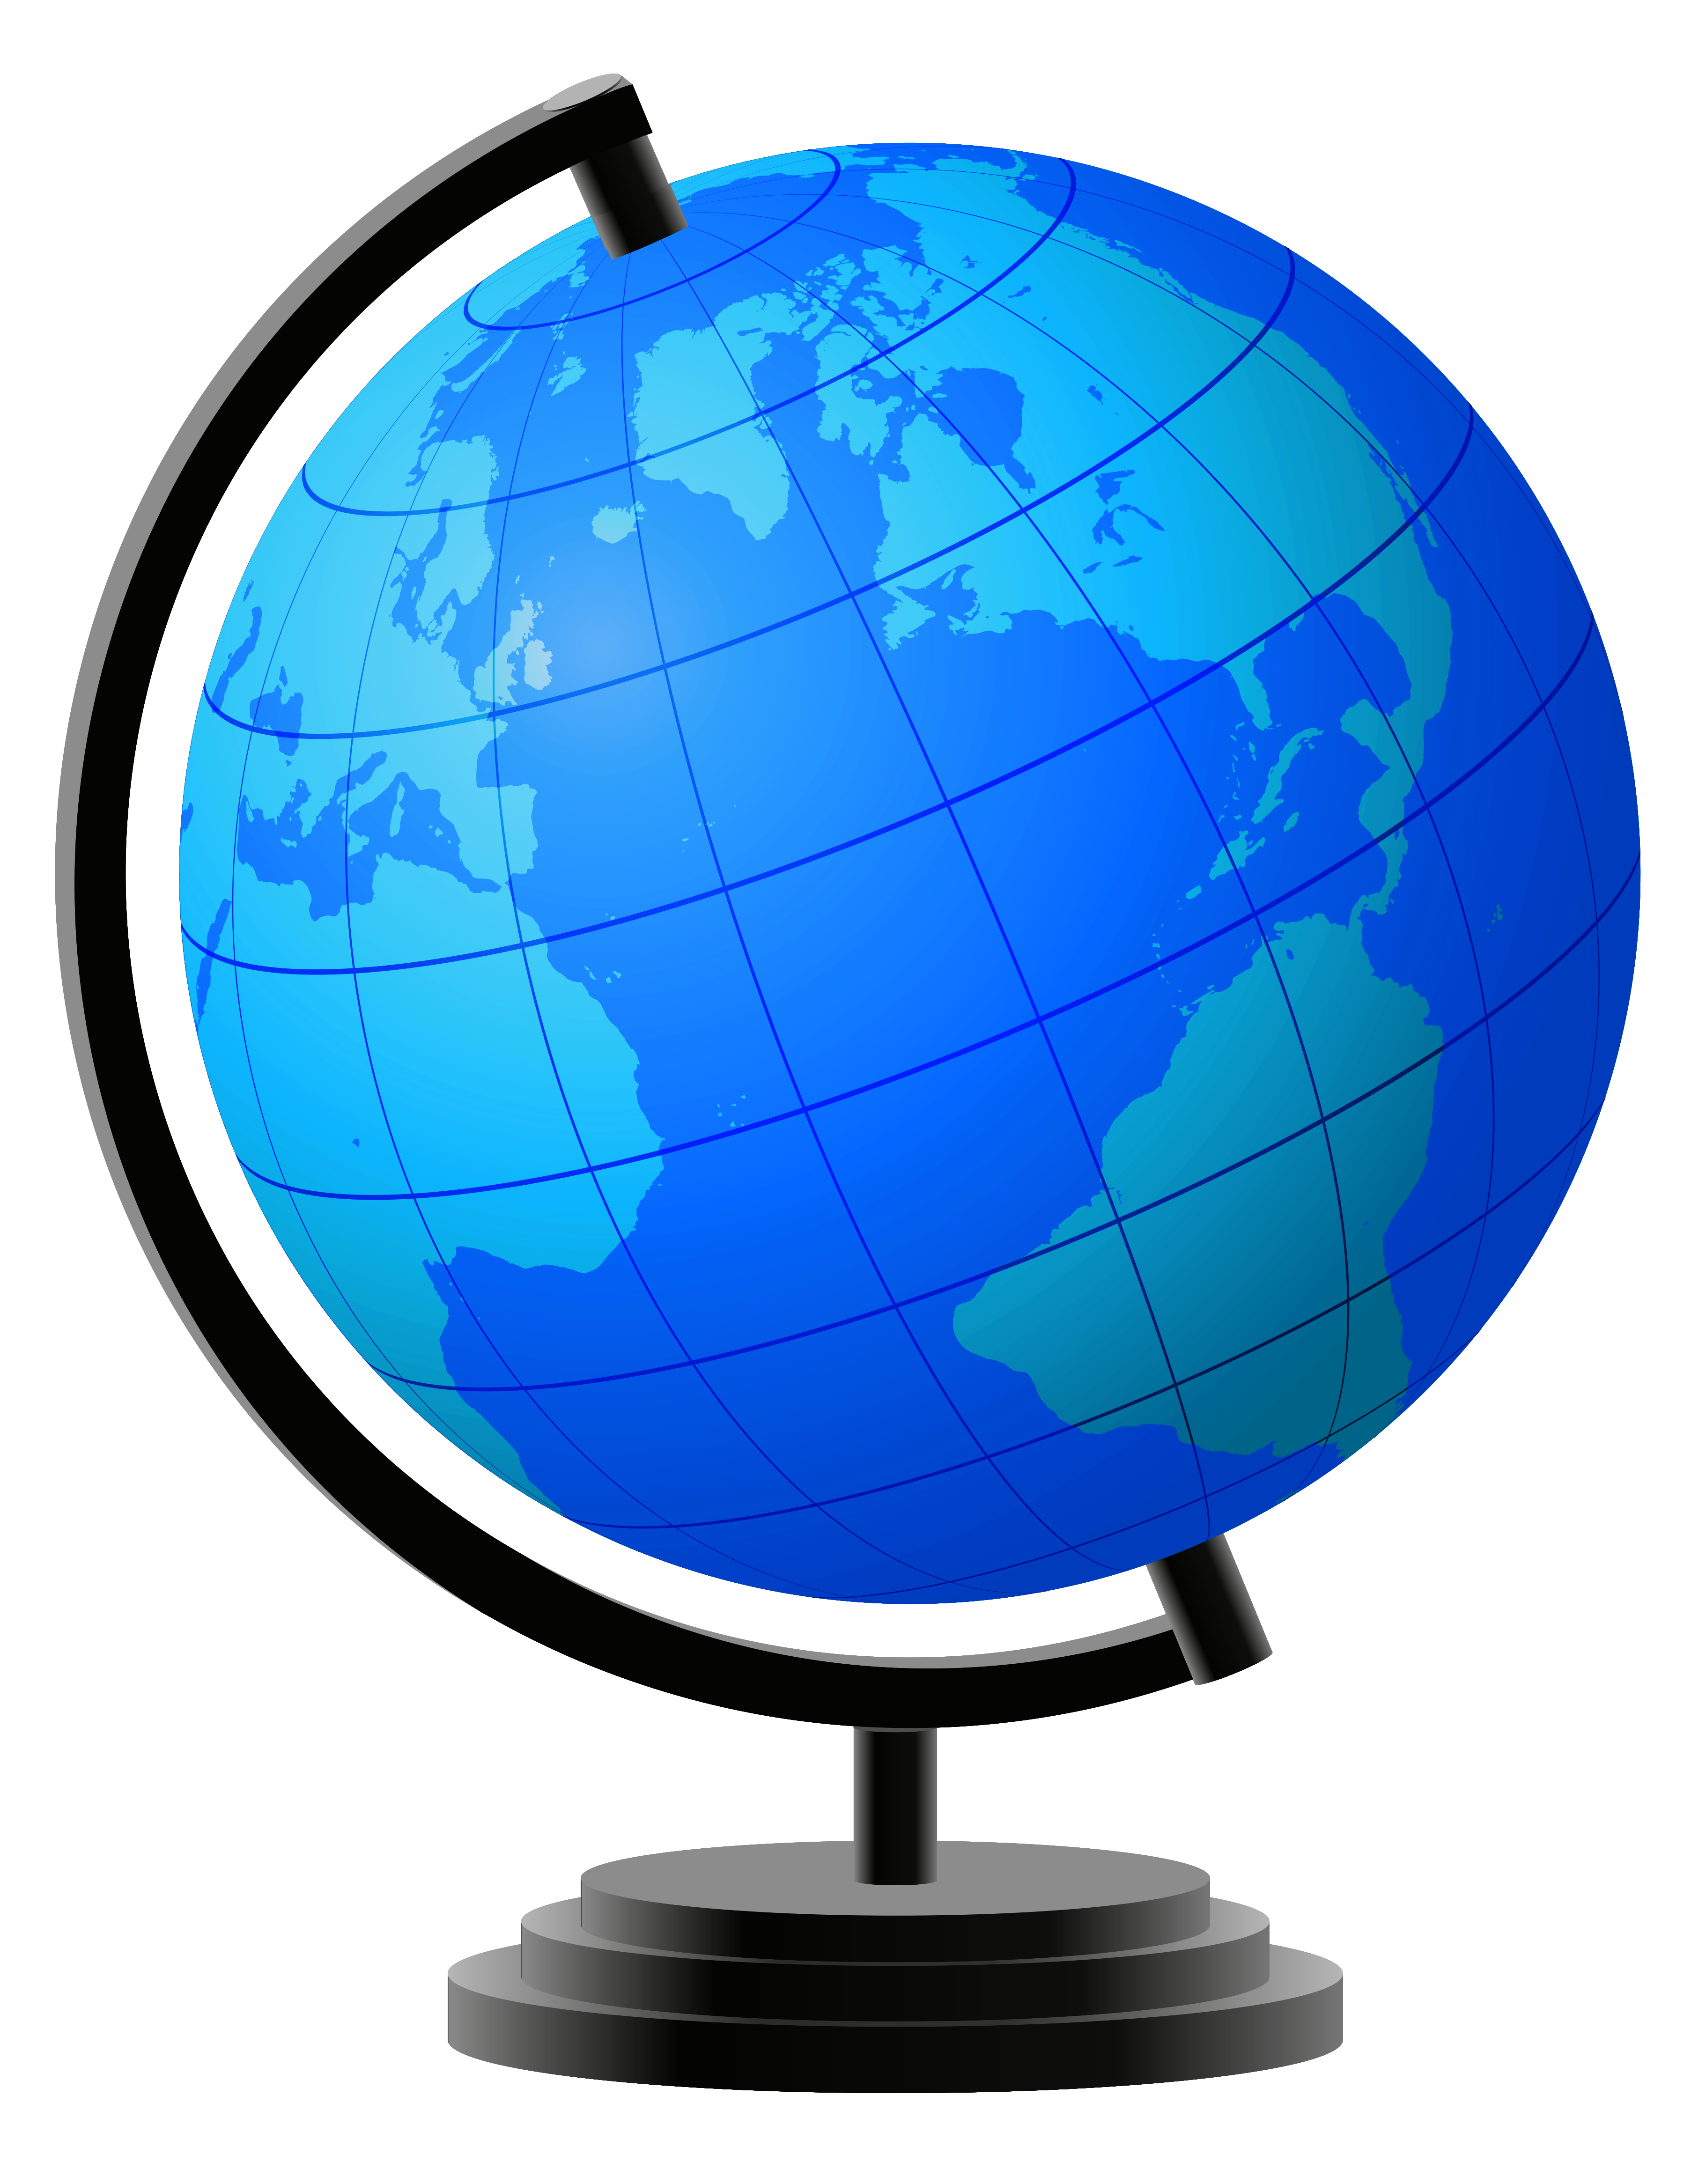 Globe png. School clipart image gallery